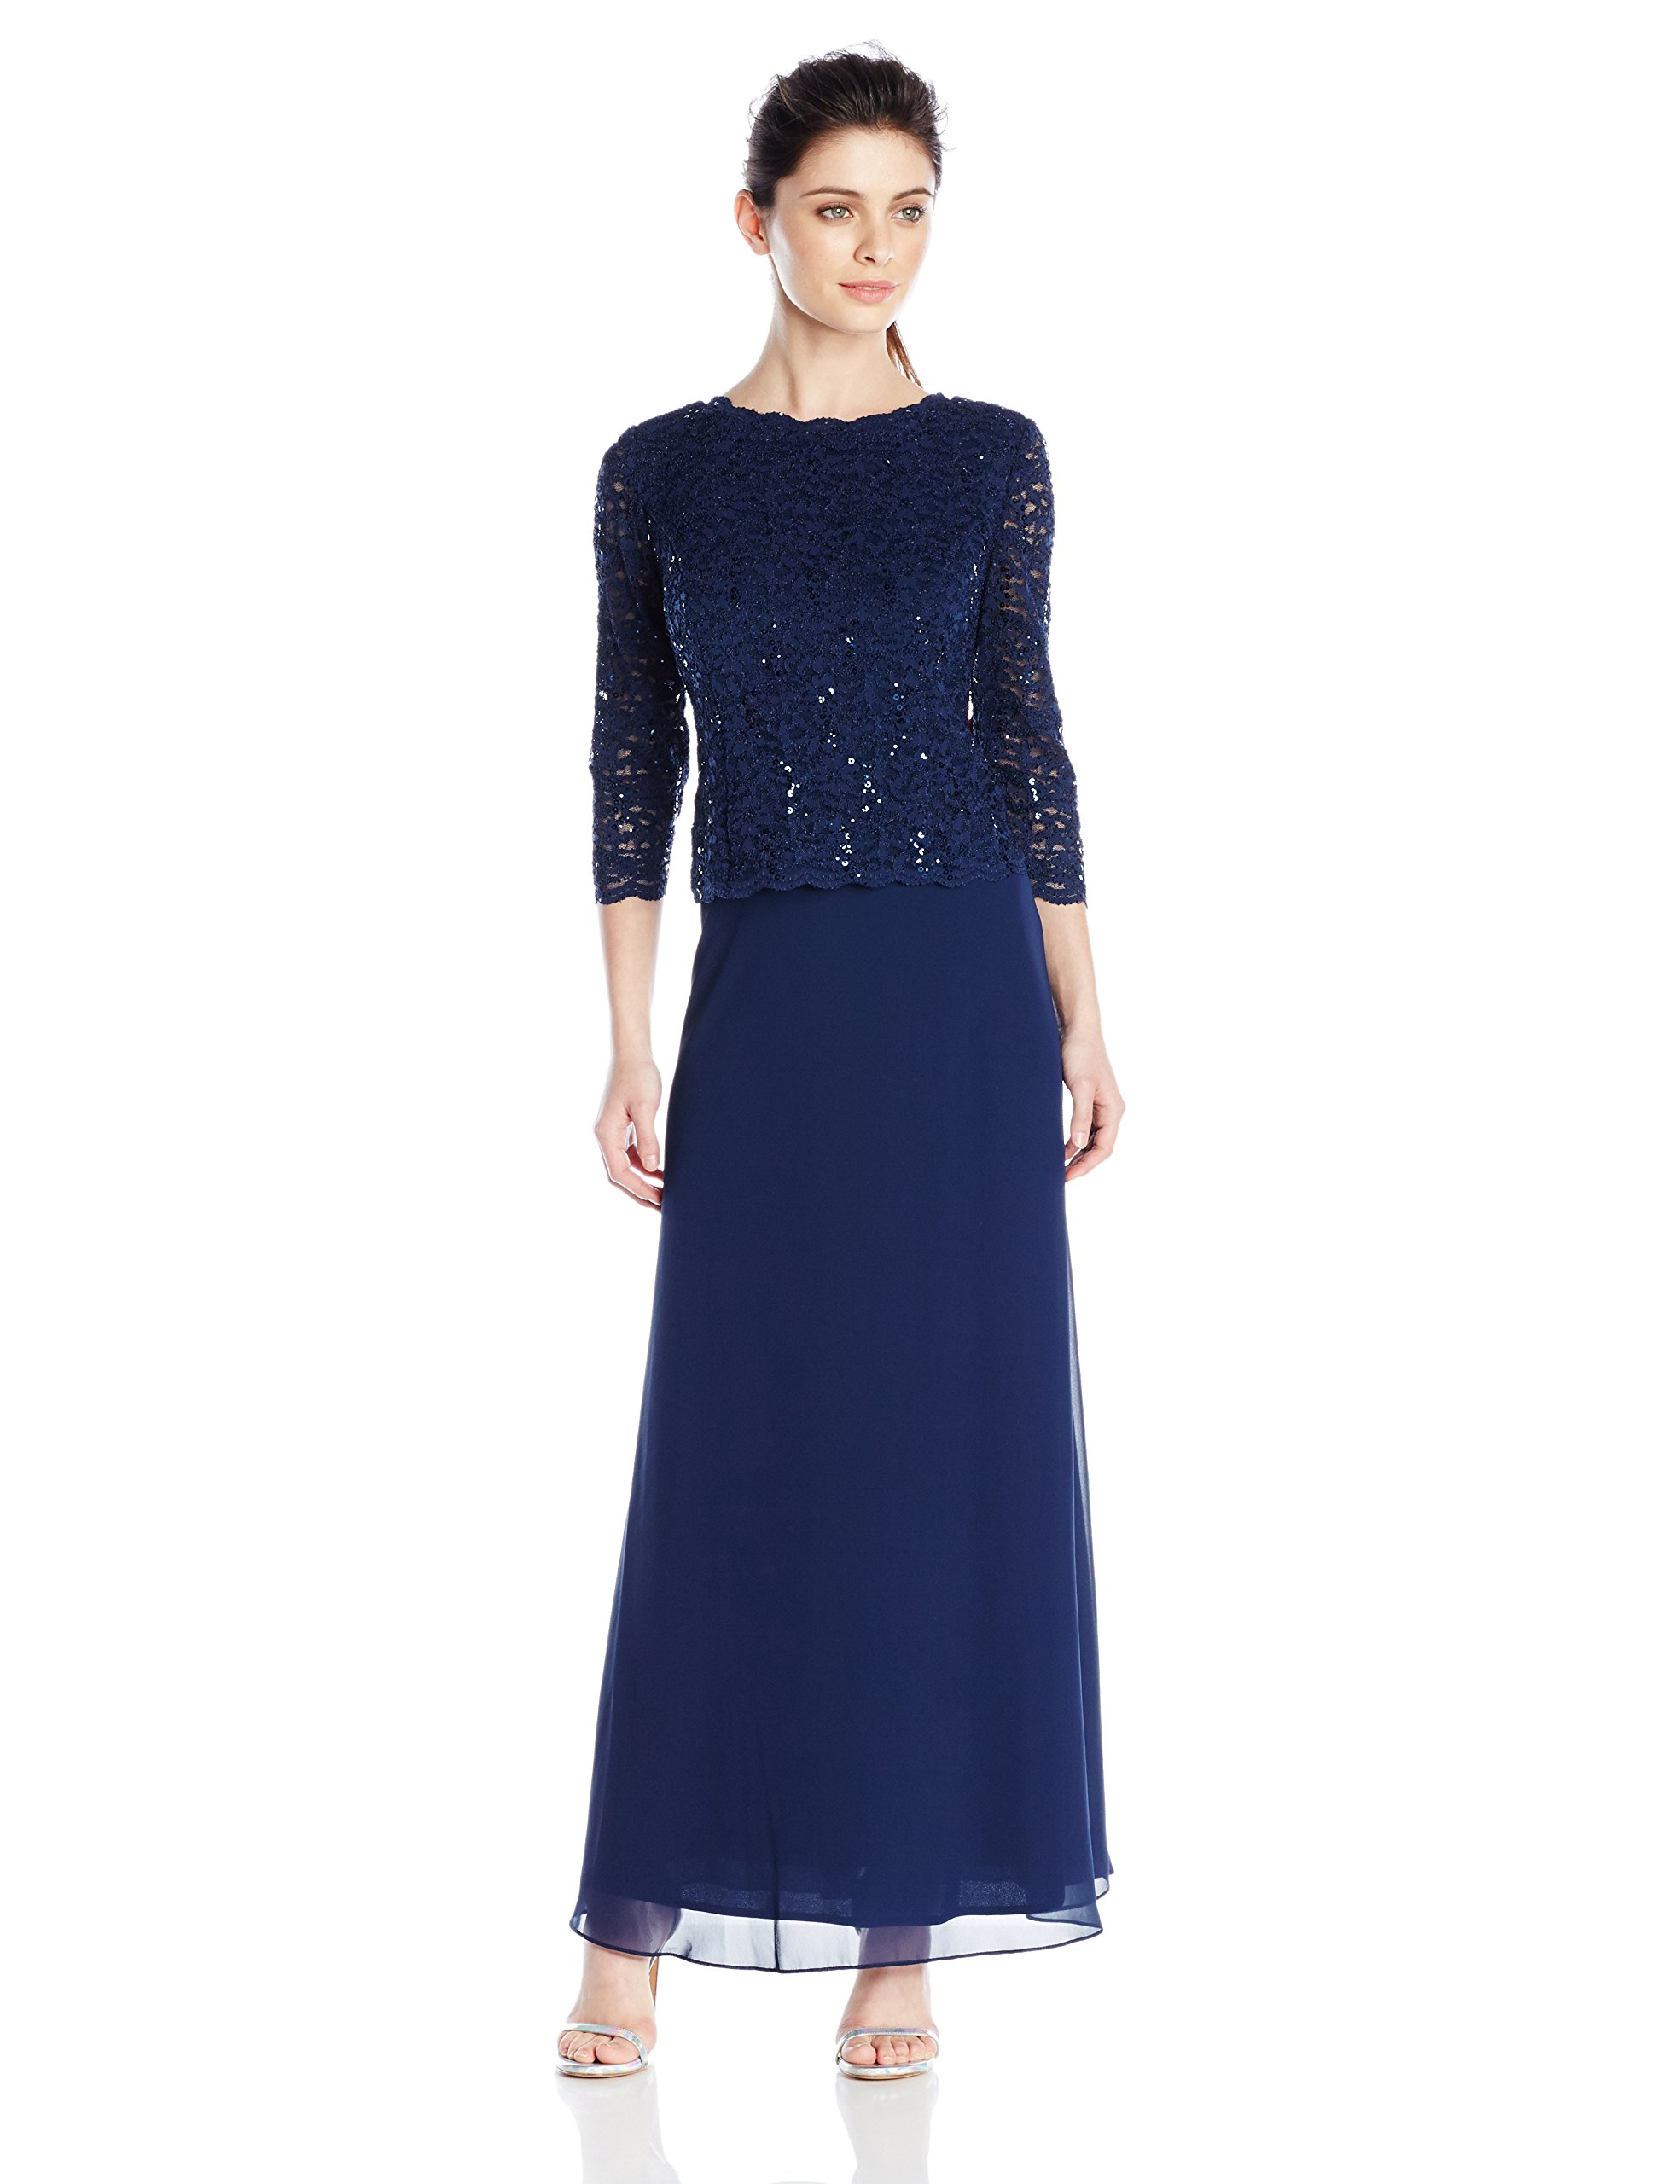 Alex Evenings Women's Long Mock Dress With Lace Sleeves (Regular Sizes), Navy, 14 Petite